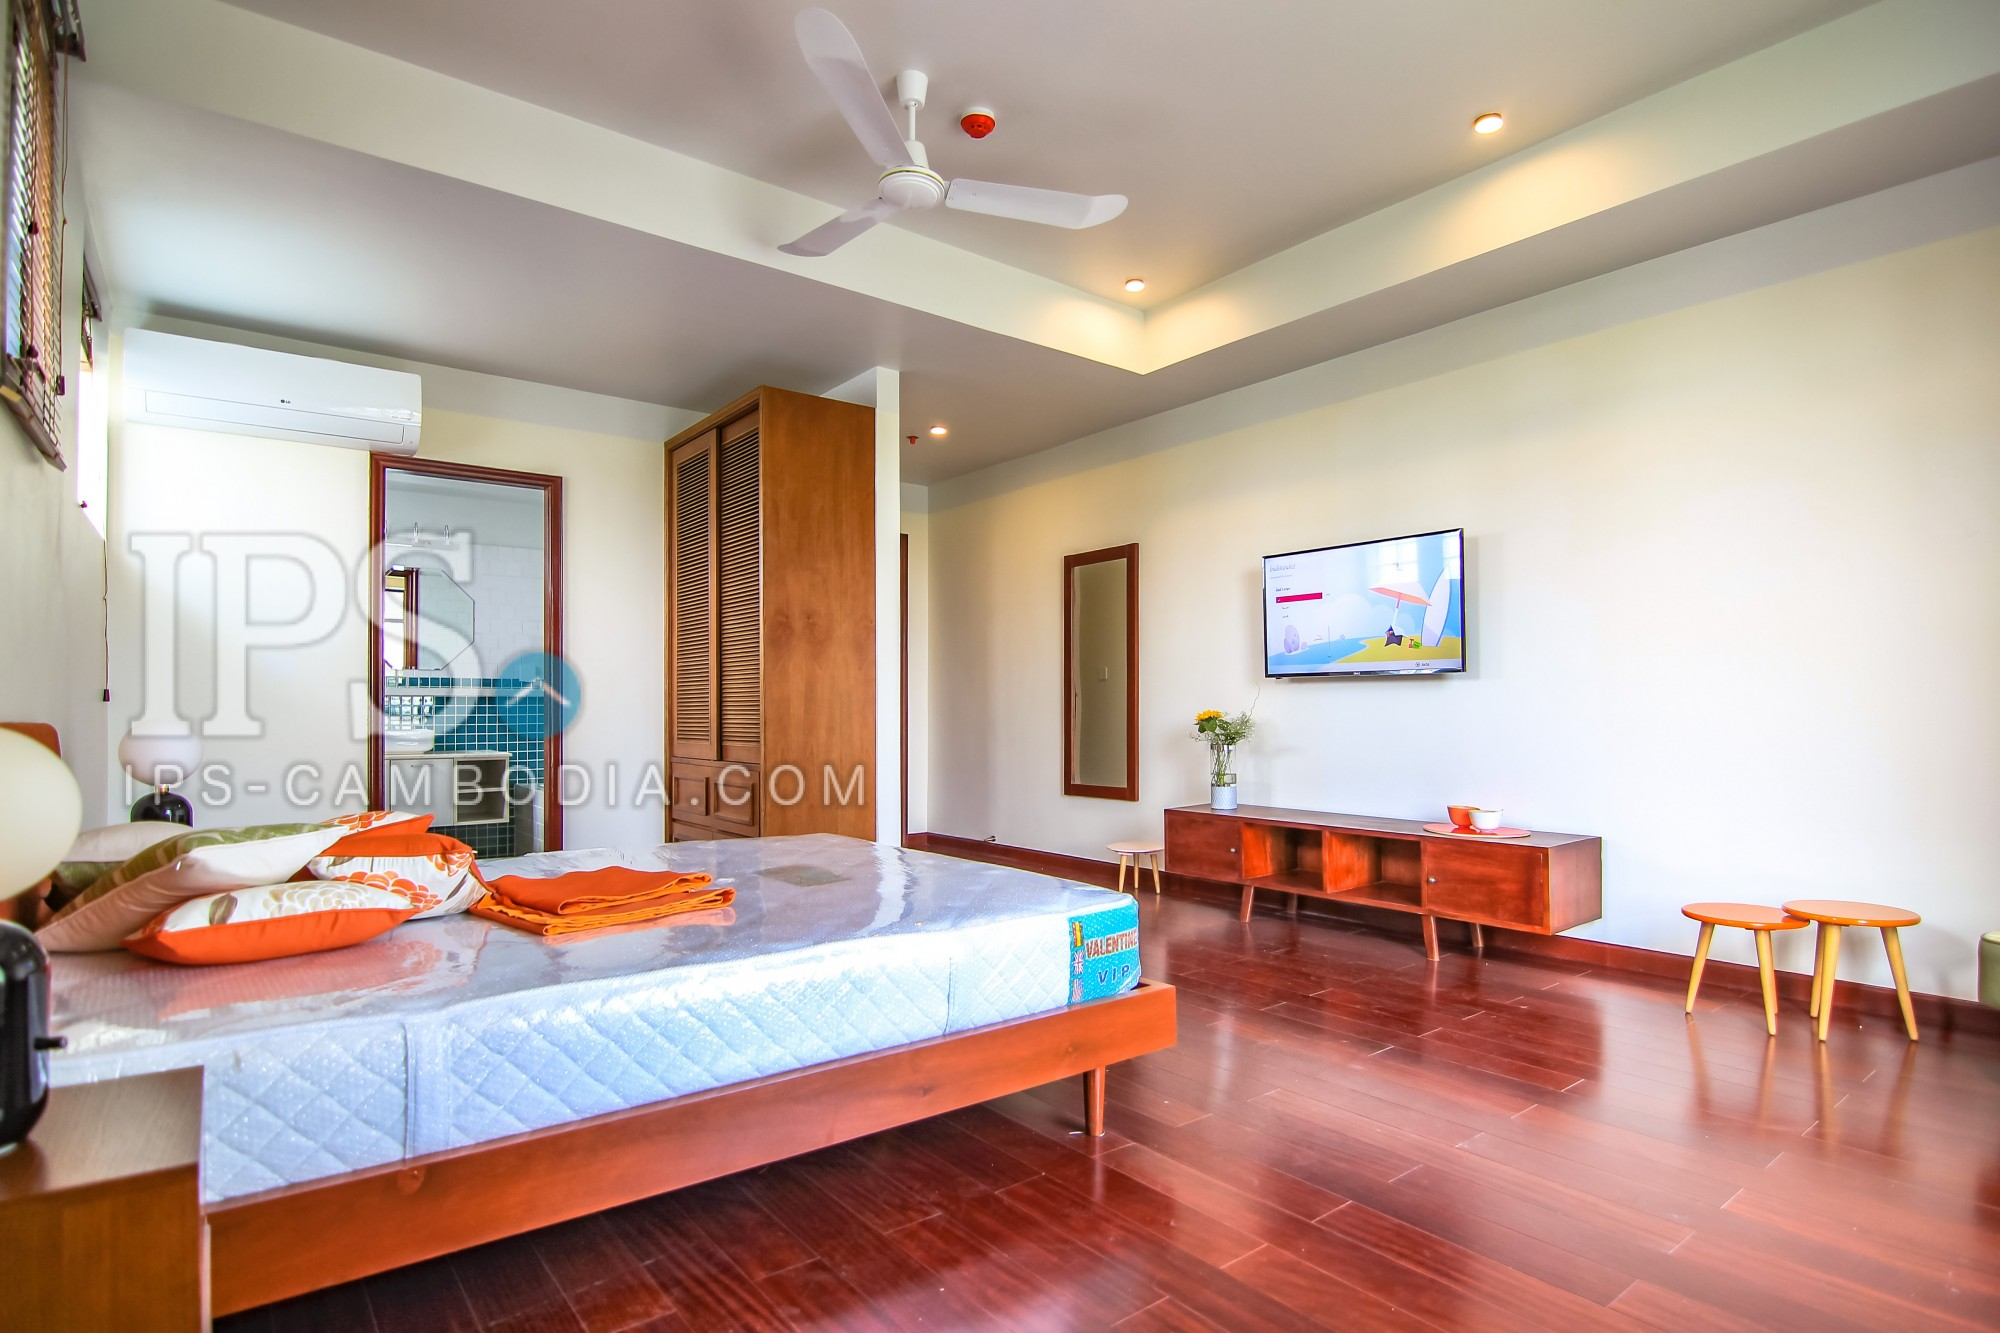 2 Bedroom Serviced Apartment for Rent - Wat Phnom